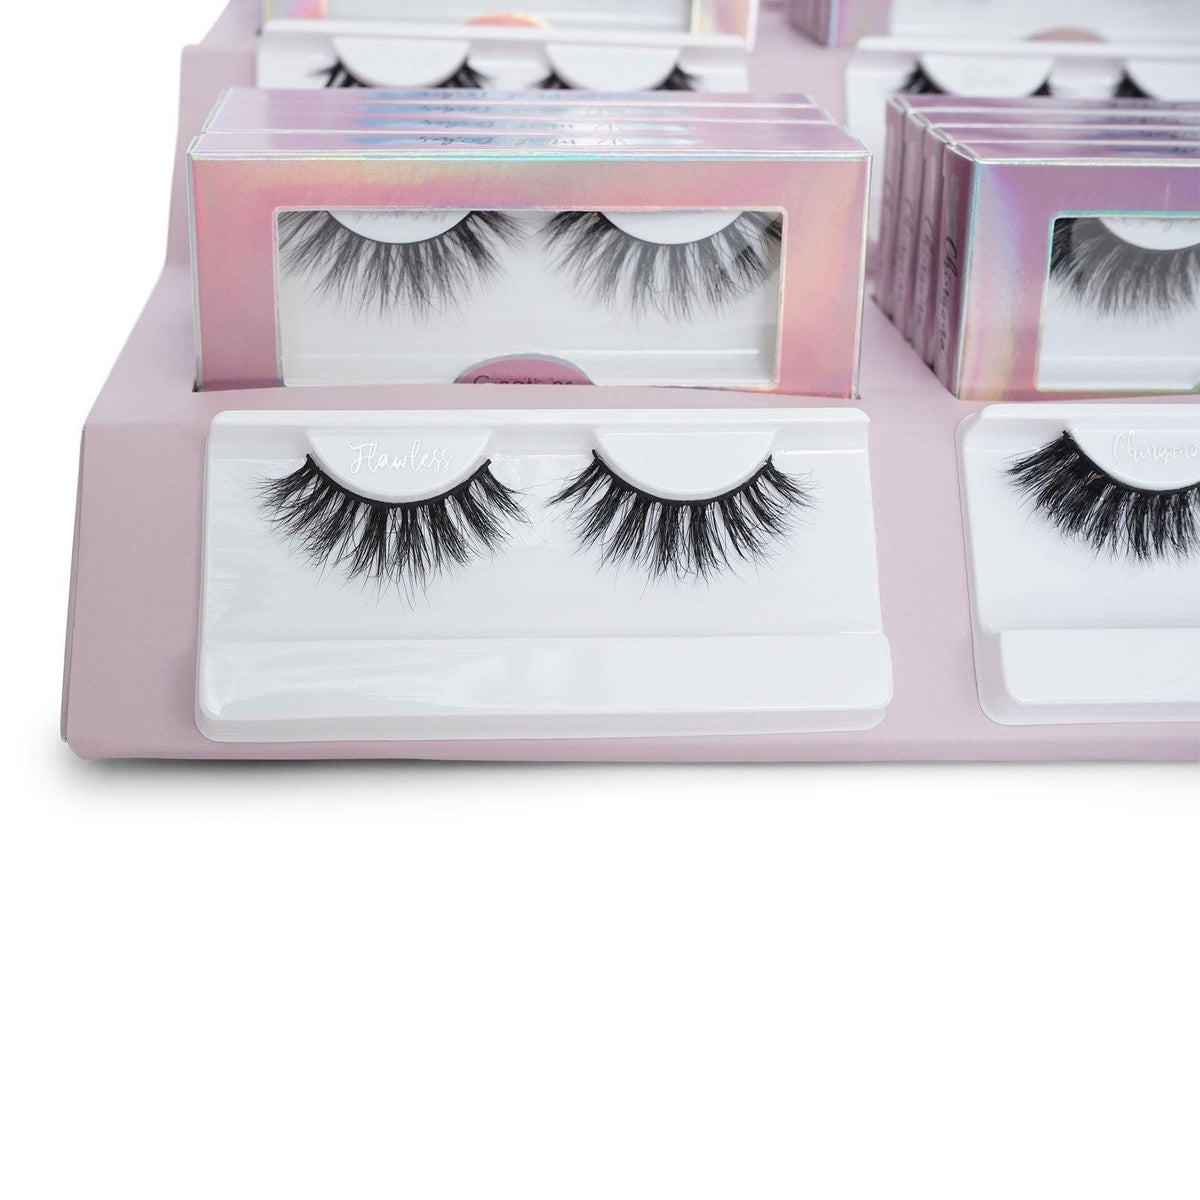 Beauty Creations 3D Mink Lashes Holographic (Display of 72) (1/cs)